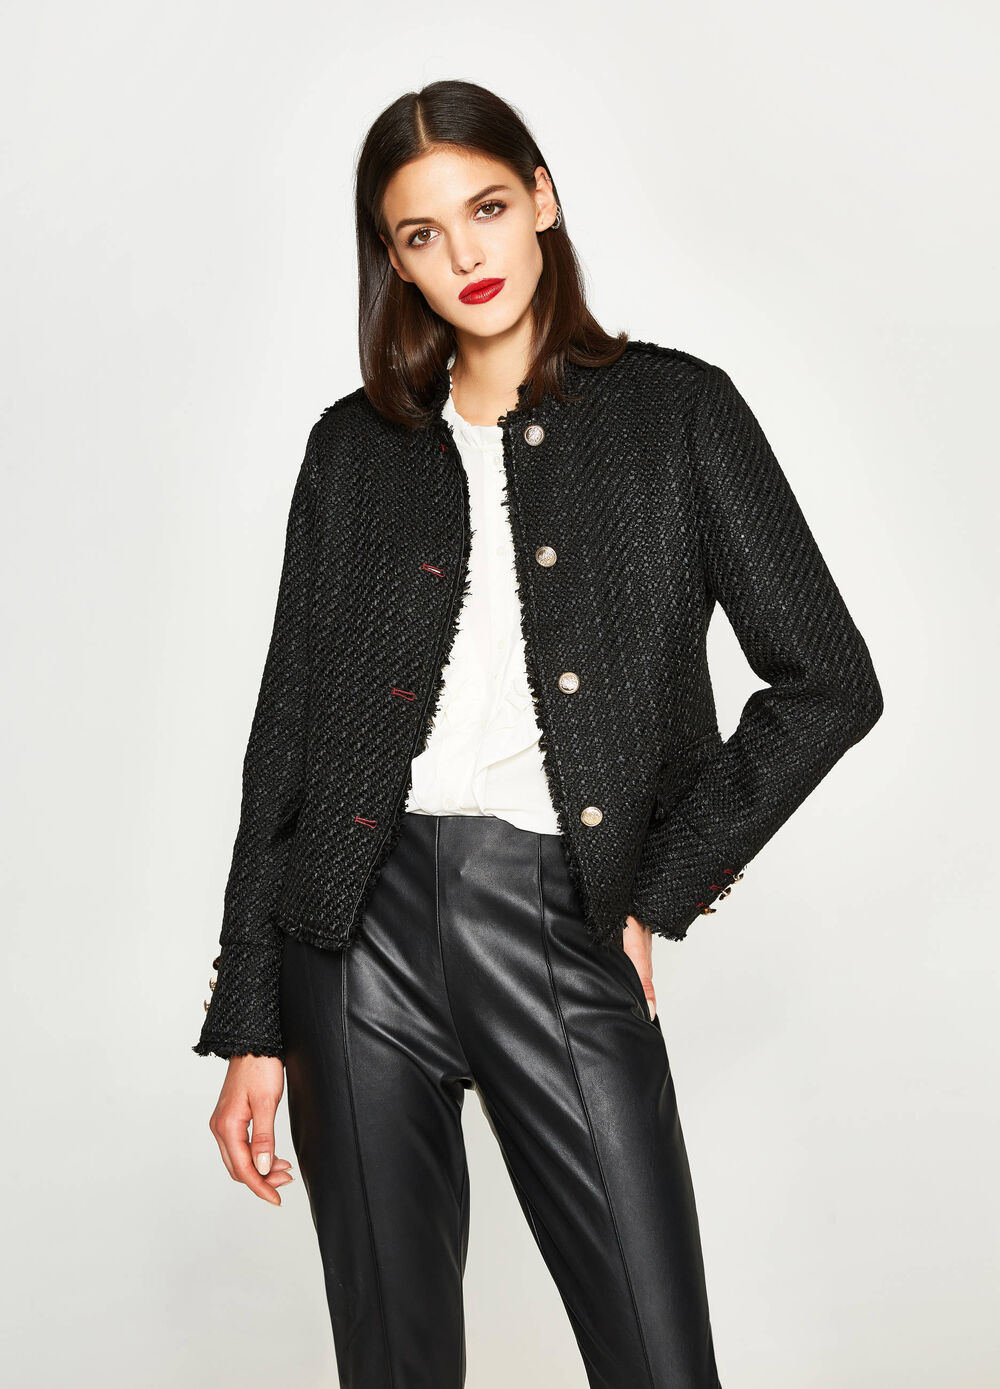 Knitted blazer with buttons